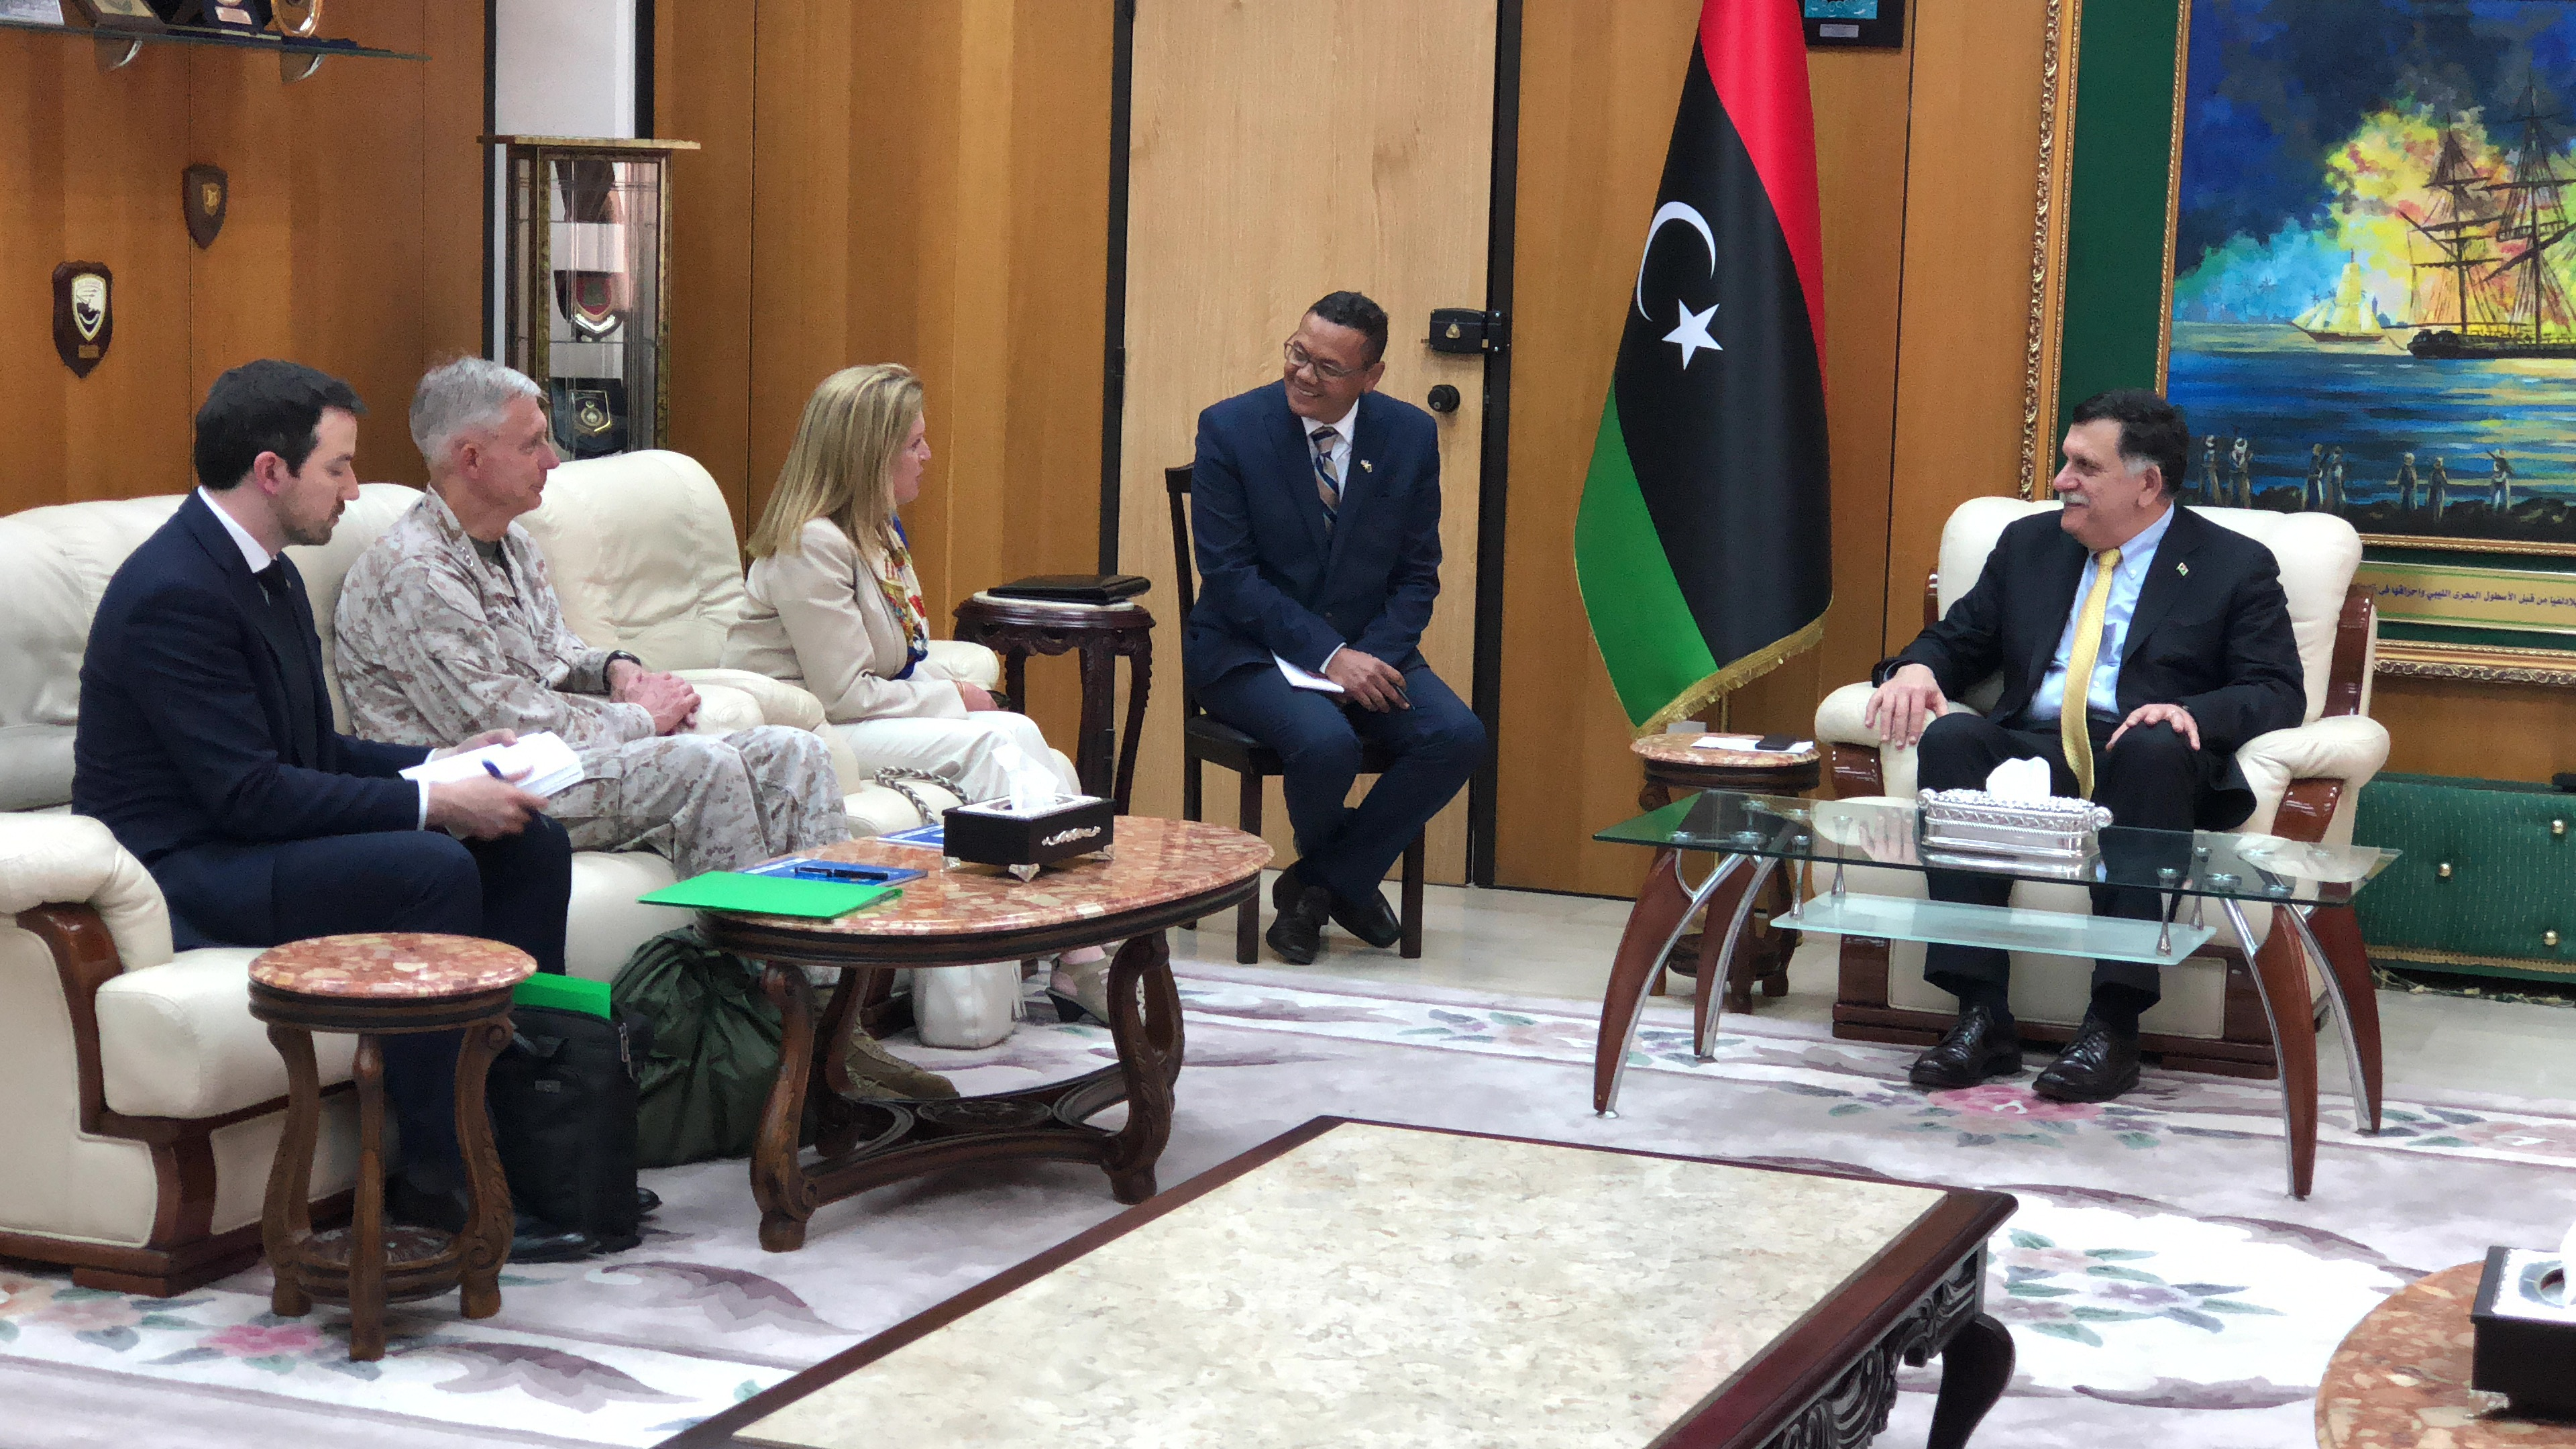 Stephanie Williams, Chargé d'Affaires, a.i. for the U.S. Department of State's Libya External Office, and U.S. Marine Corps Gen. Thomas Waldhauser, Commander, U.S. Africa Command, met with Libya's Government of National Accord Prime Minister Fayez al-Sarraj in Tripoli on May 31, 2018.